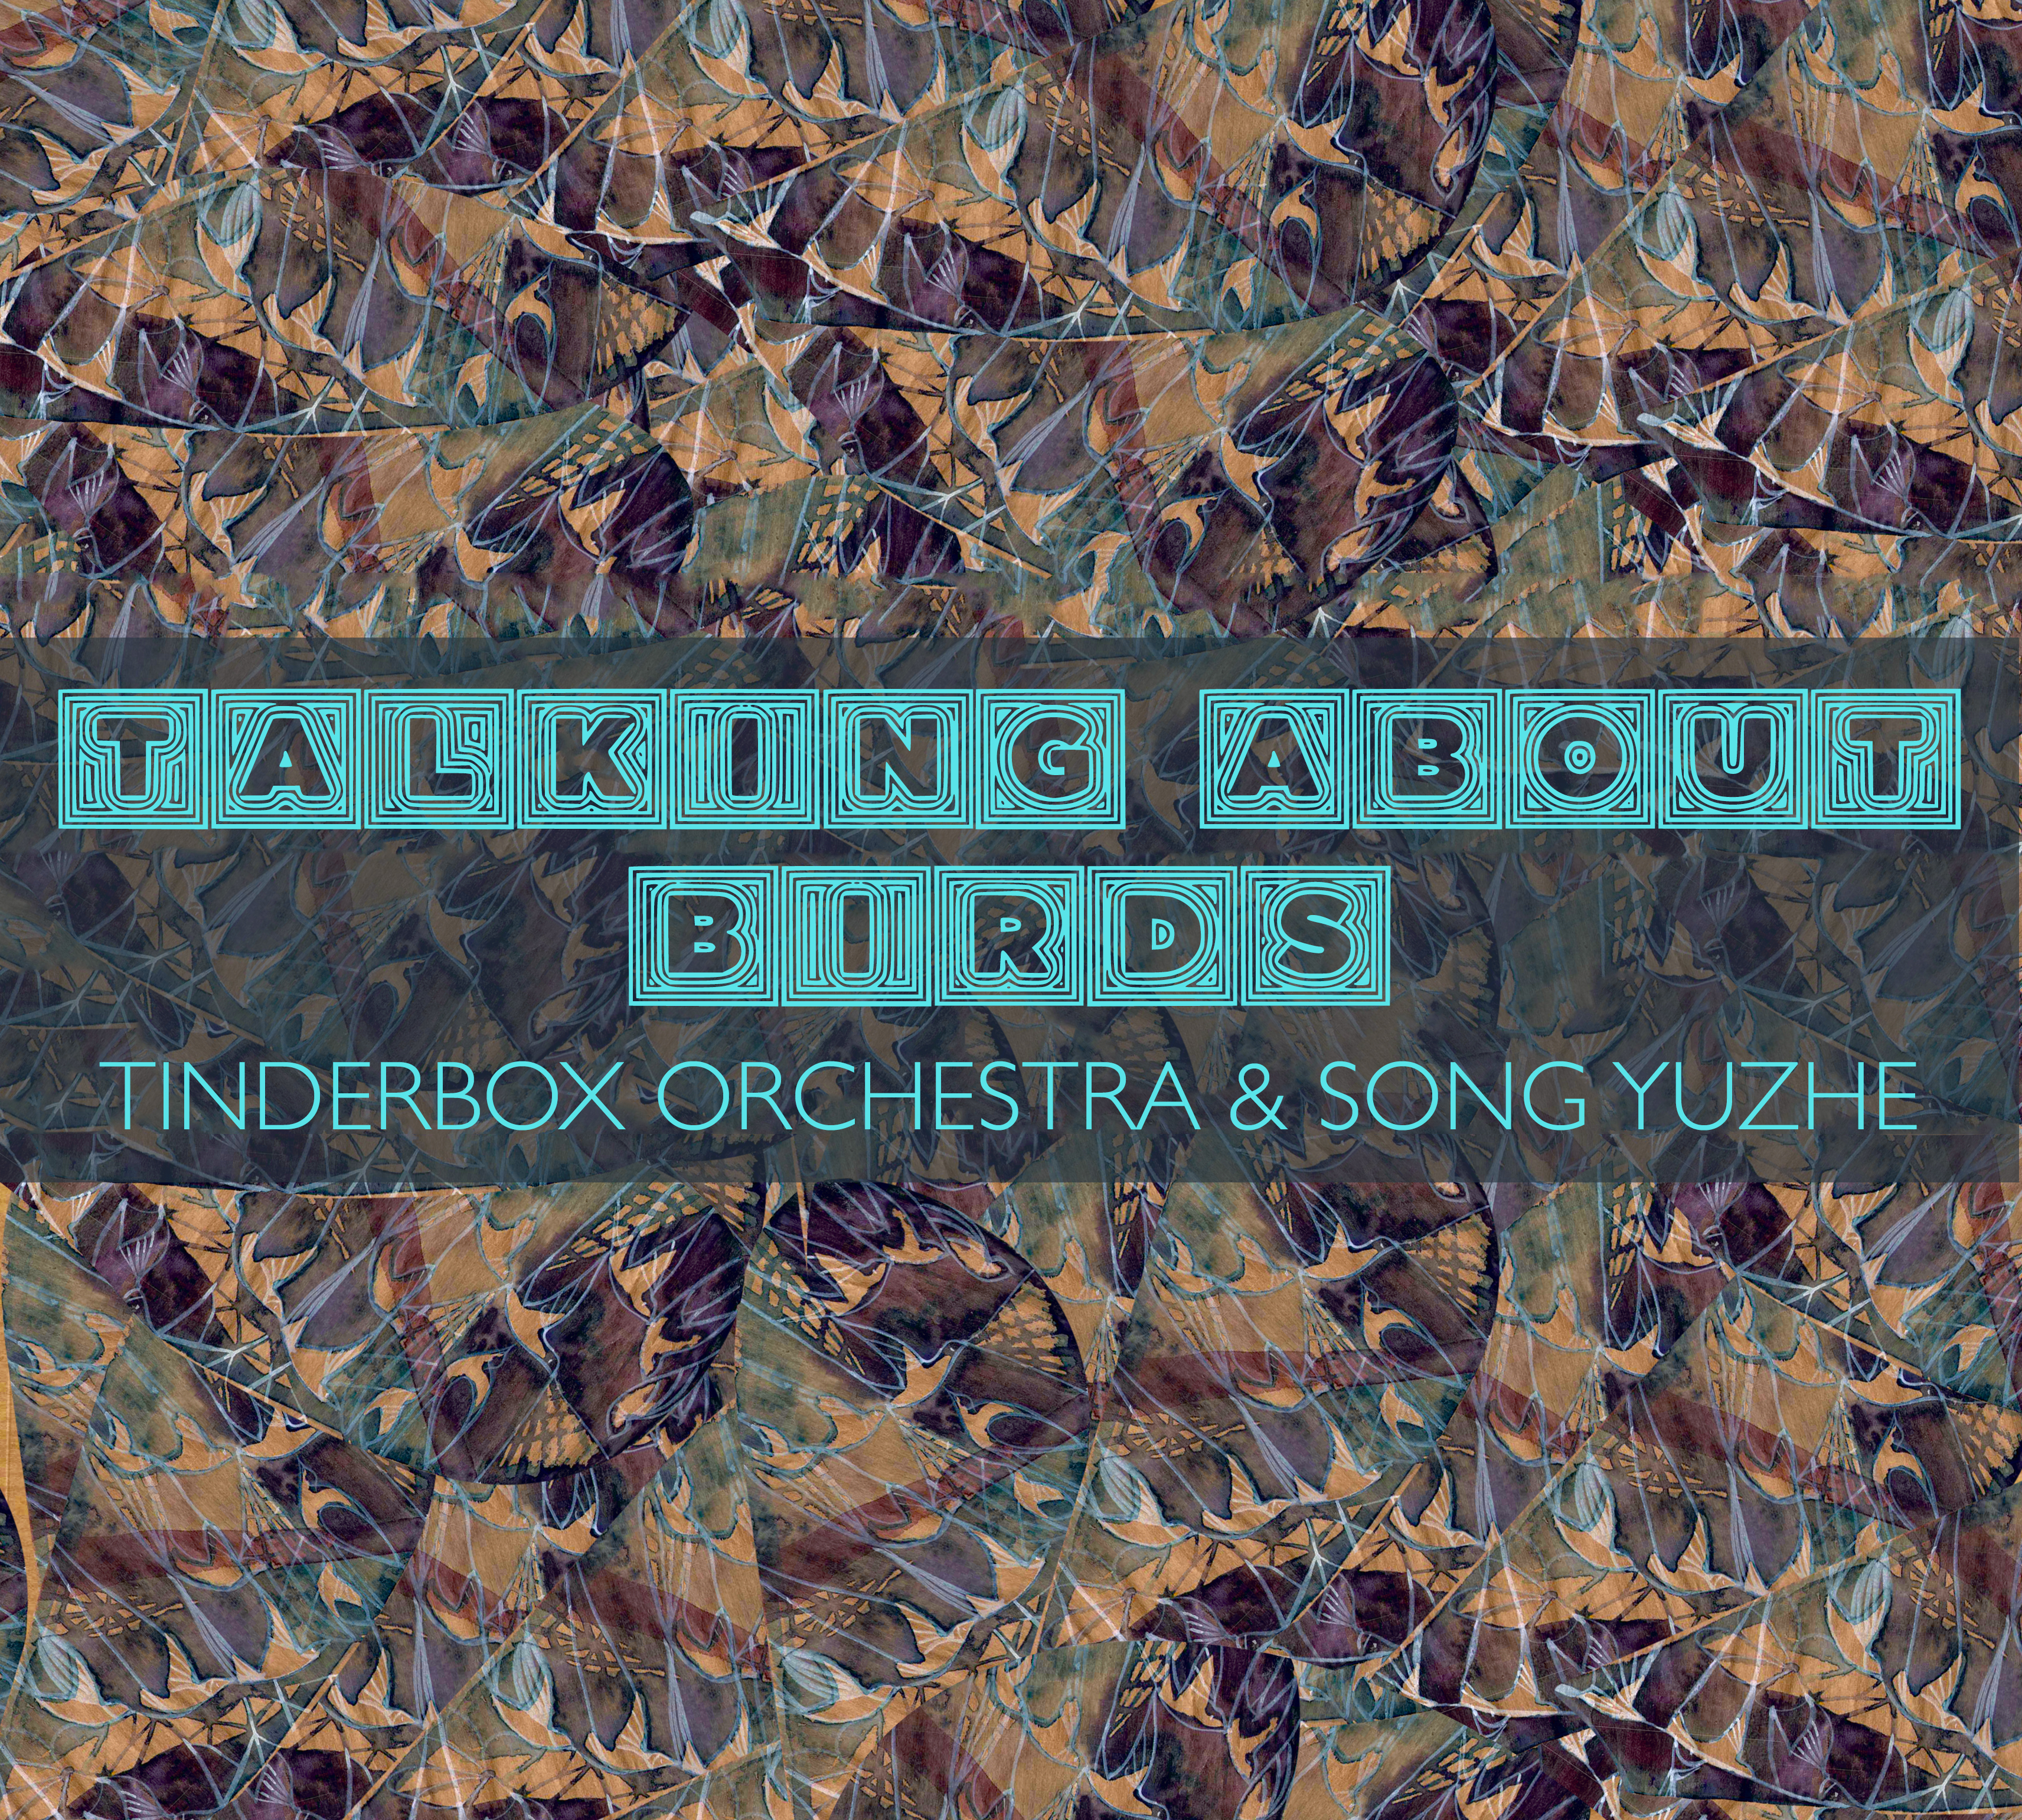 talking-about-birds-